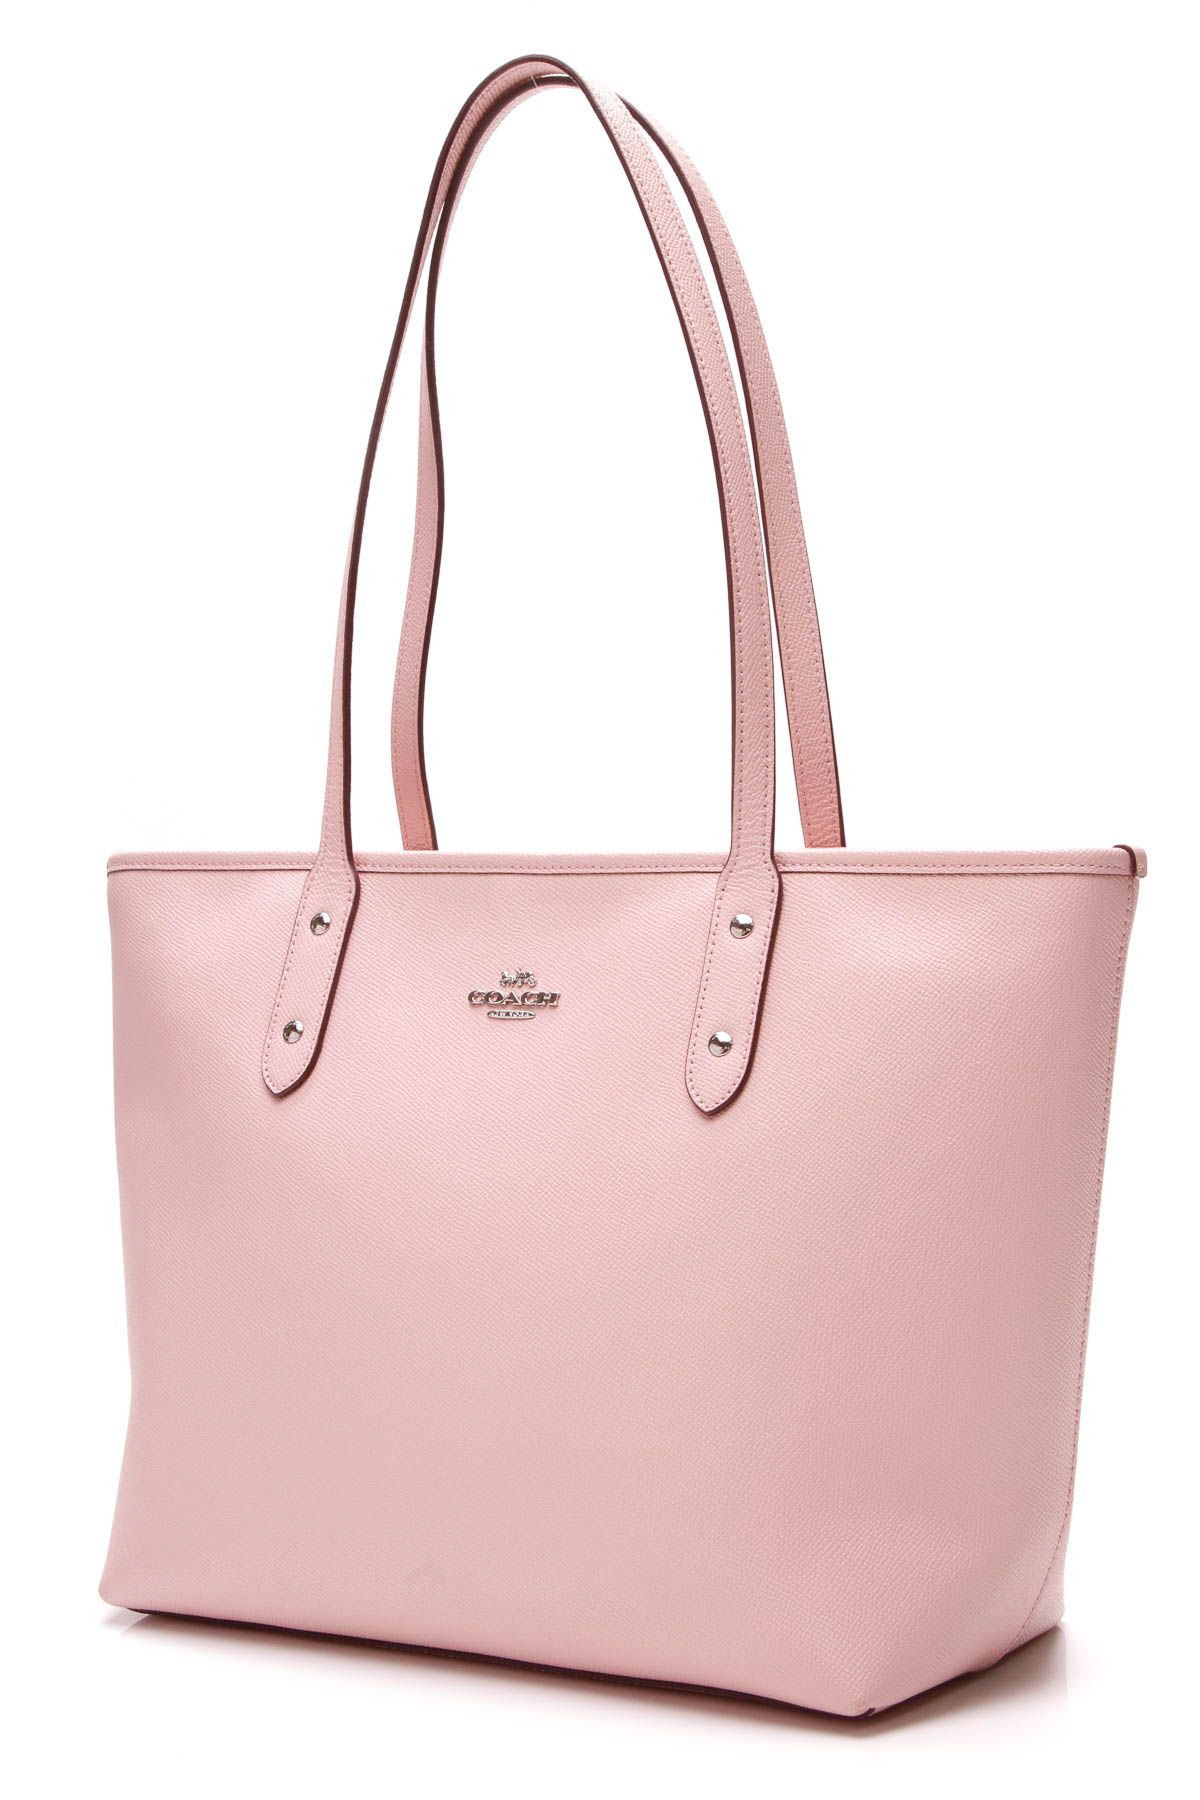 06ea9eac9284ed City Zip Tote Bag - Pink Leather in 2019 | In The Bag | Bags, Pink ...